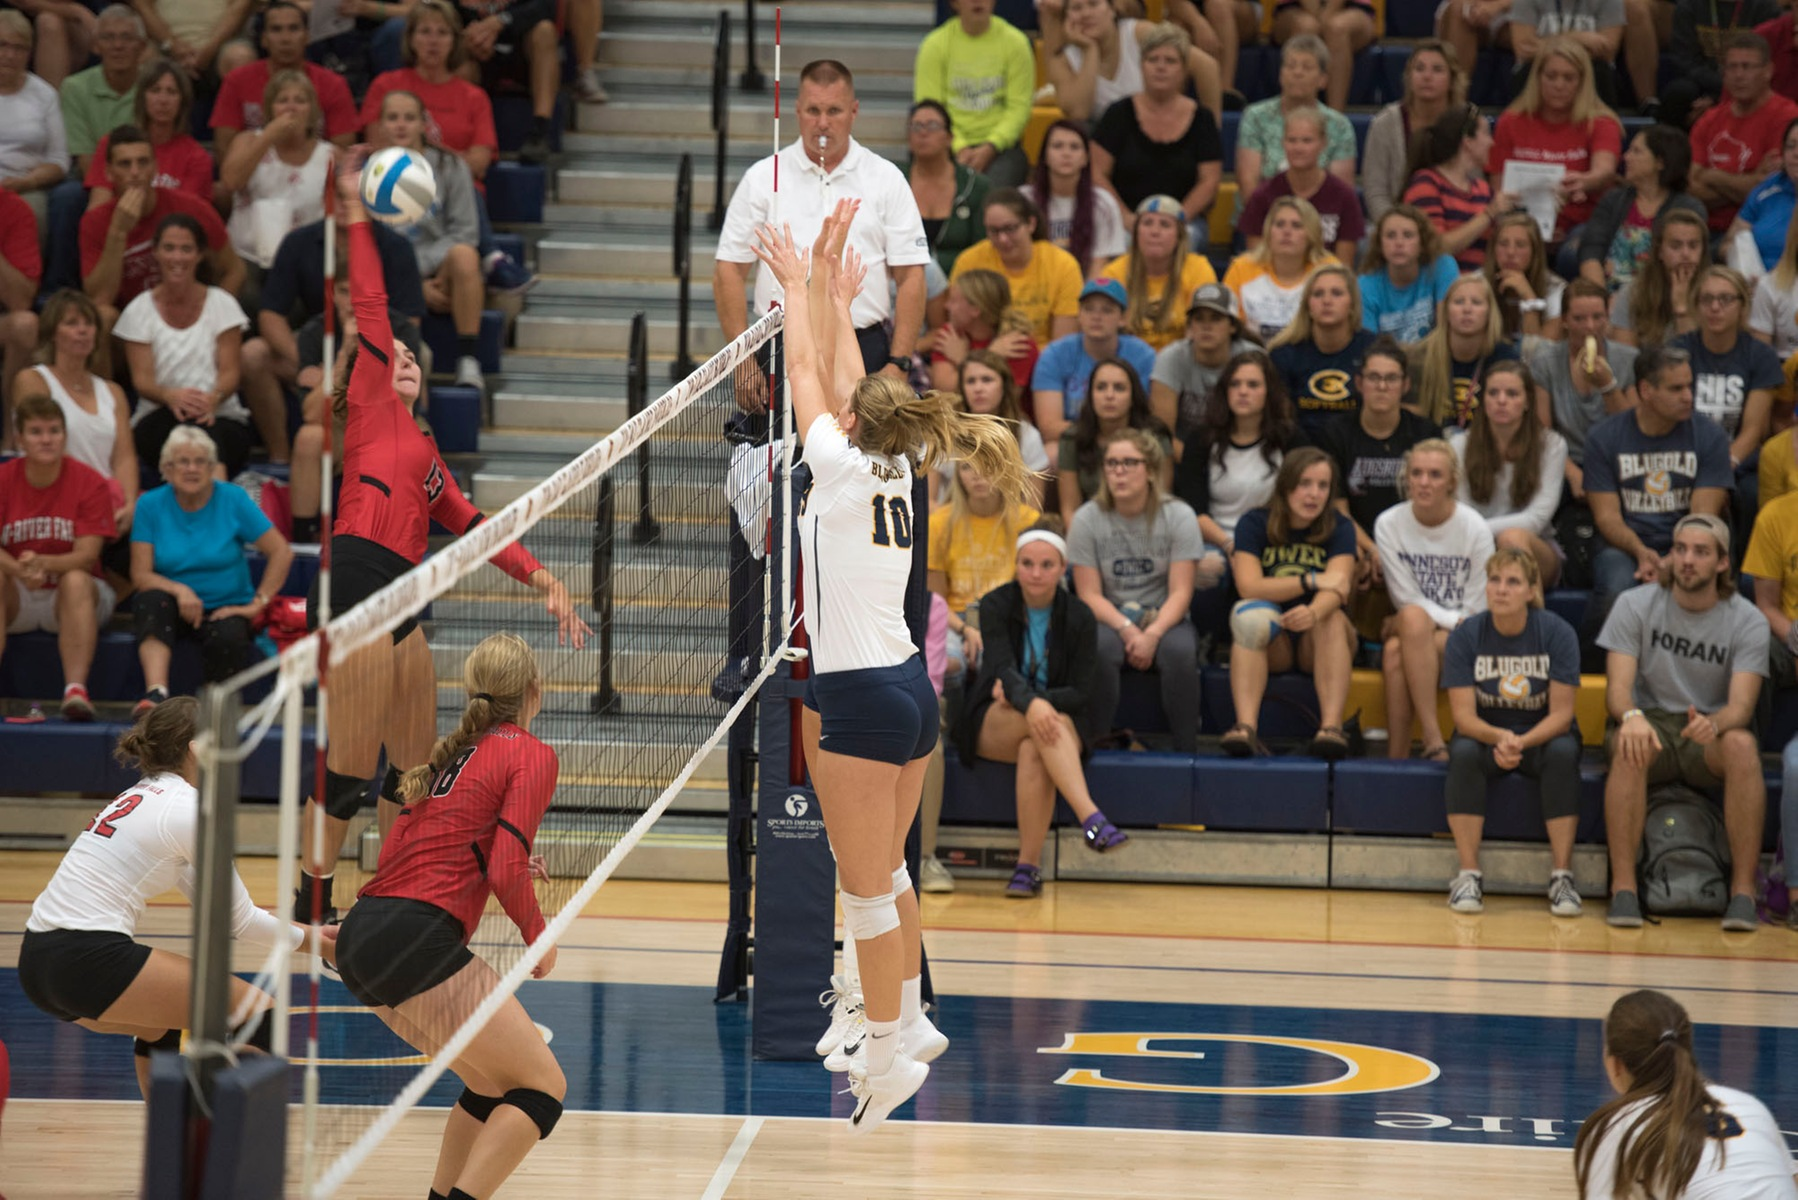 Blugolds sweep Cobbers & Eagles to close out Schumacher Memorial Tournament